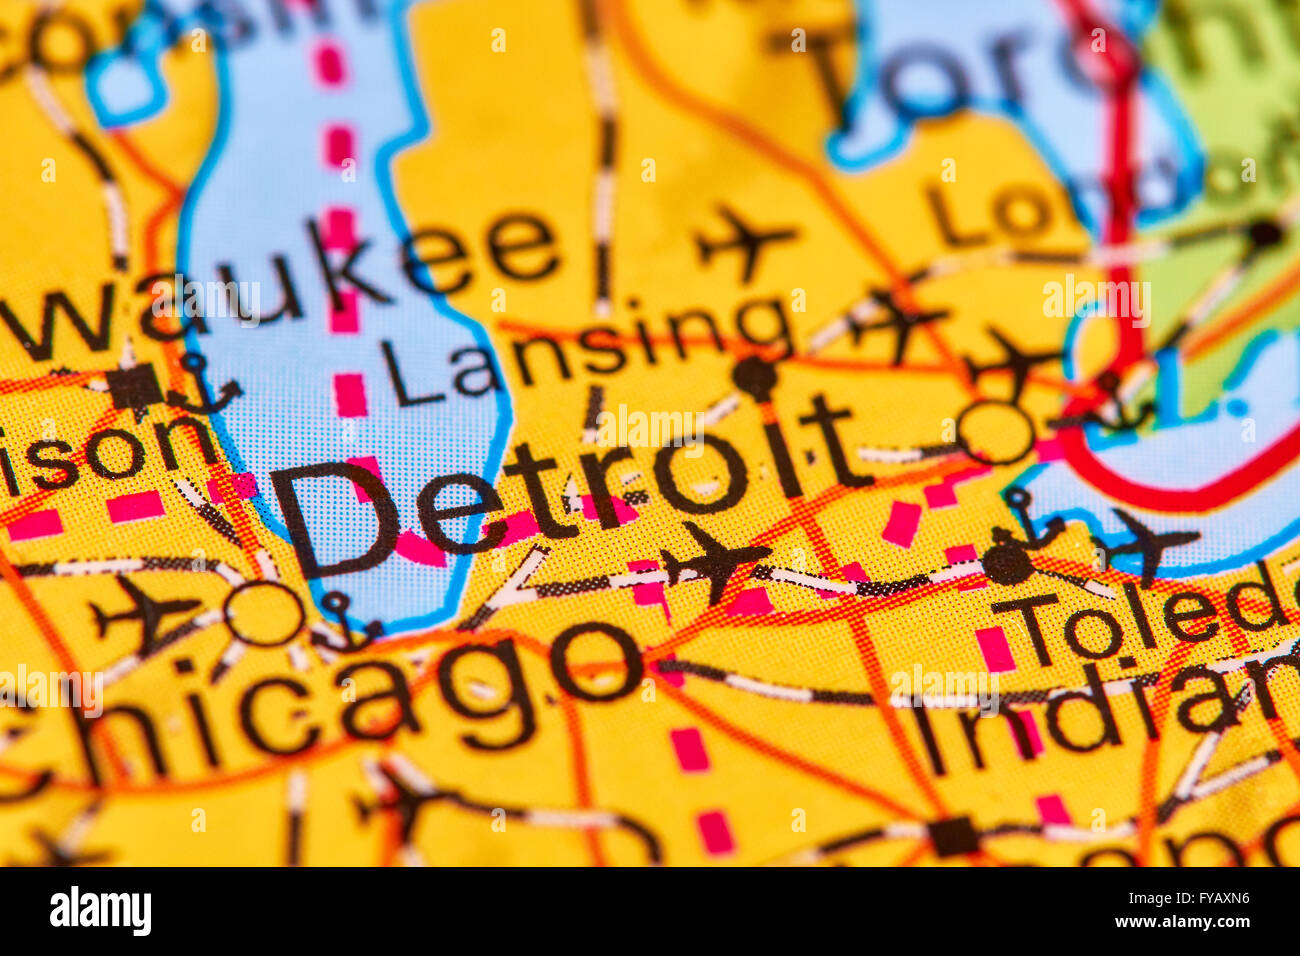 Detroit In Usa Map.Detroit City In Usa On The World Map Stock Photo 102888050 Alamy